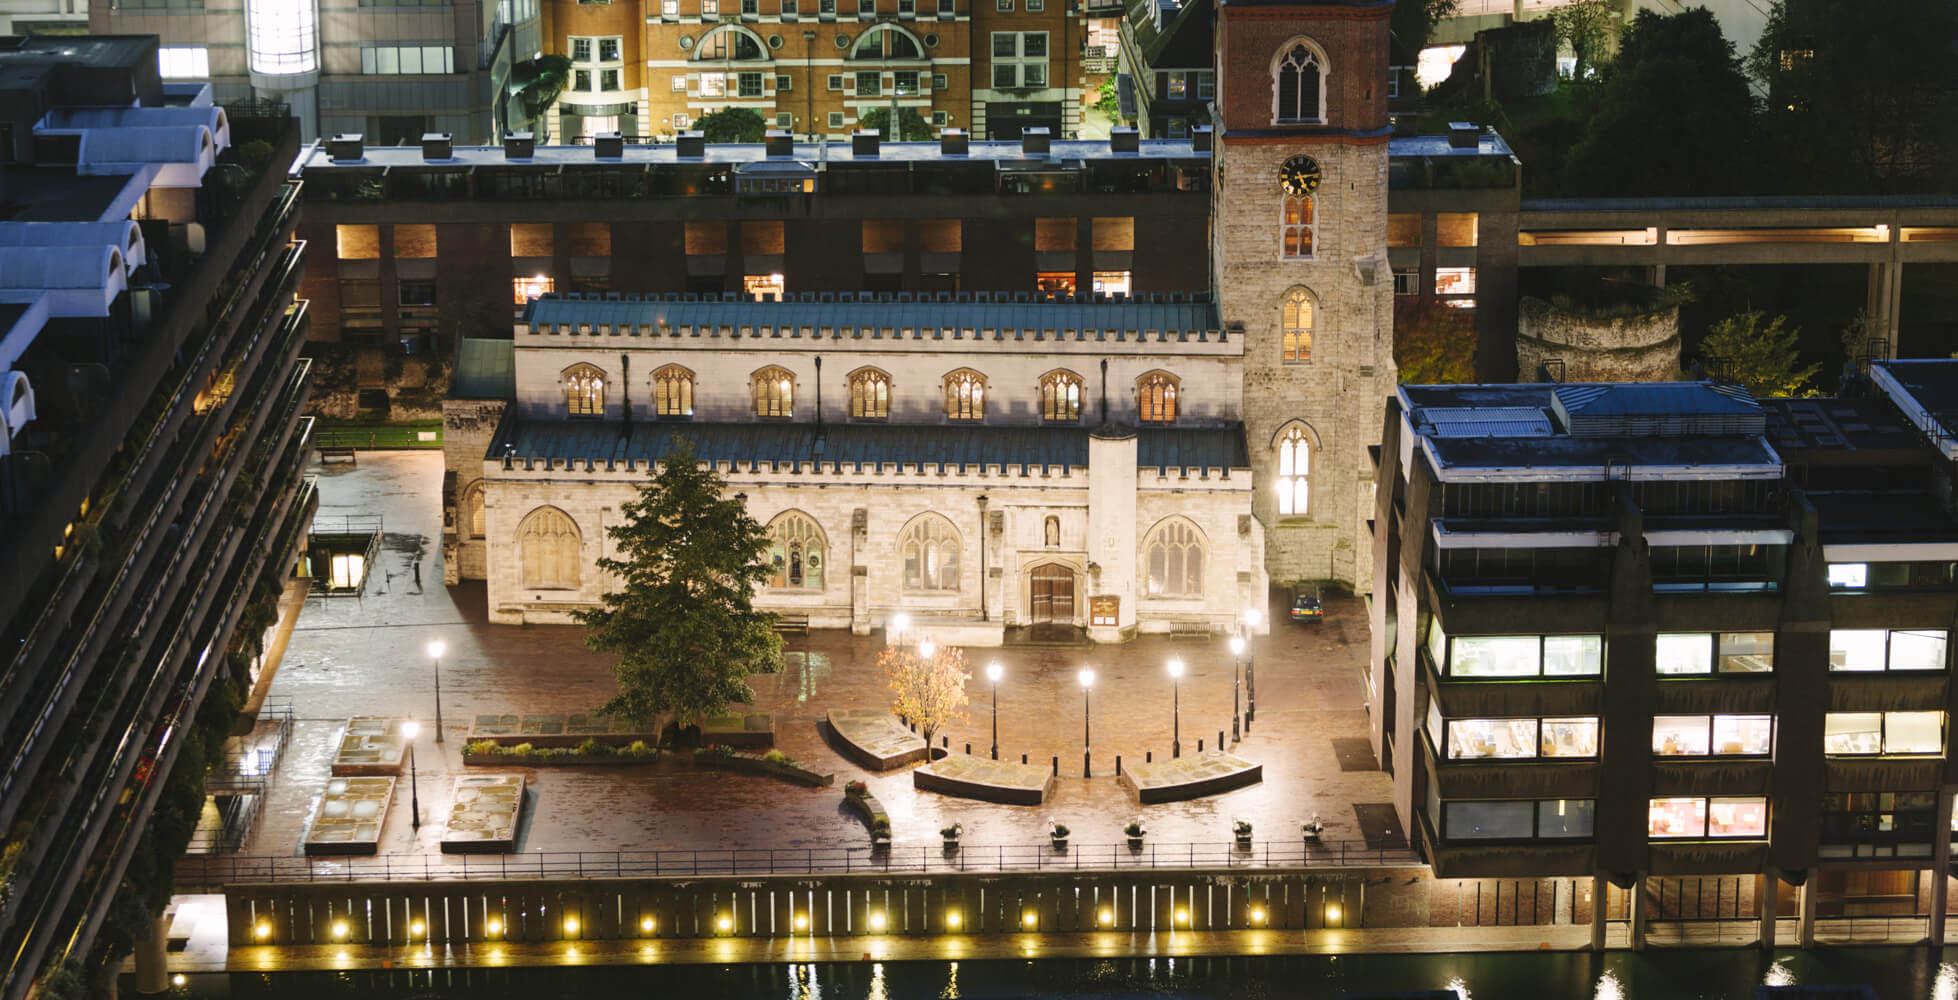 Expanding Facilities At The City Of London School For Girls Montagu Evans